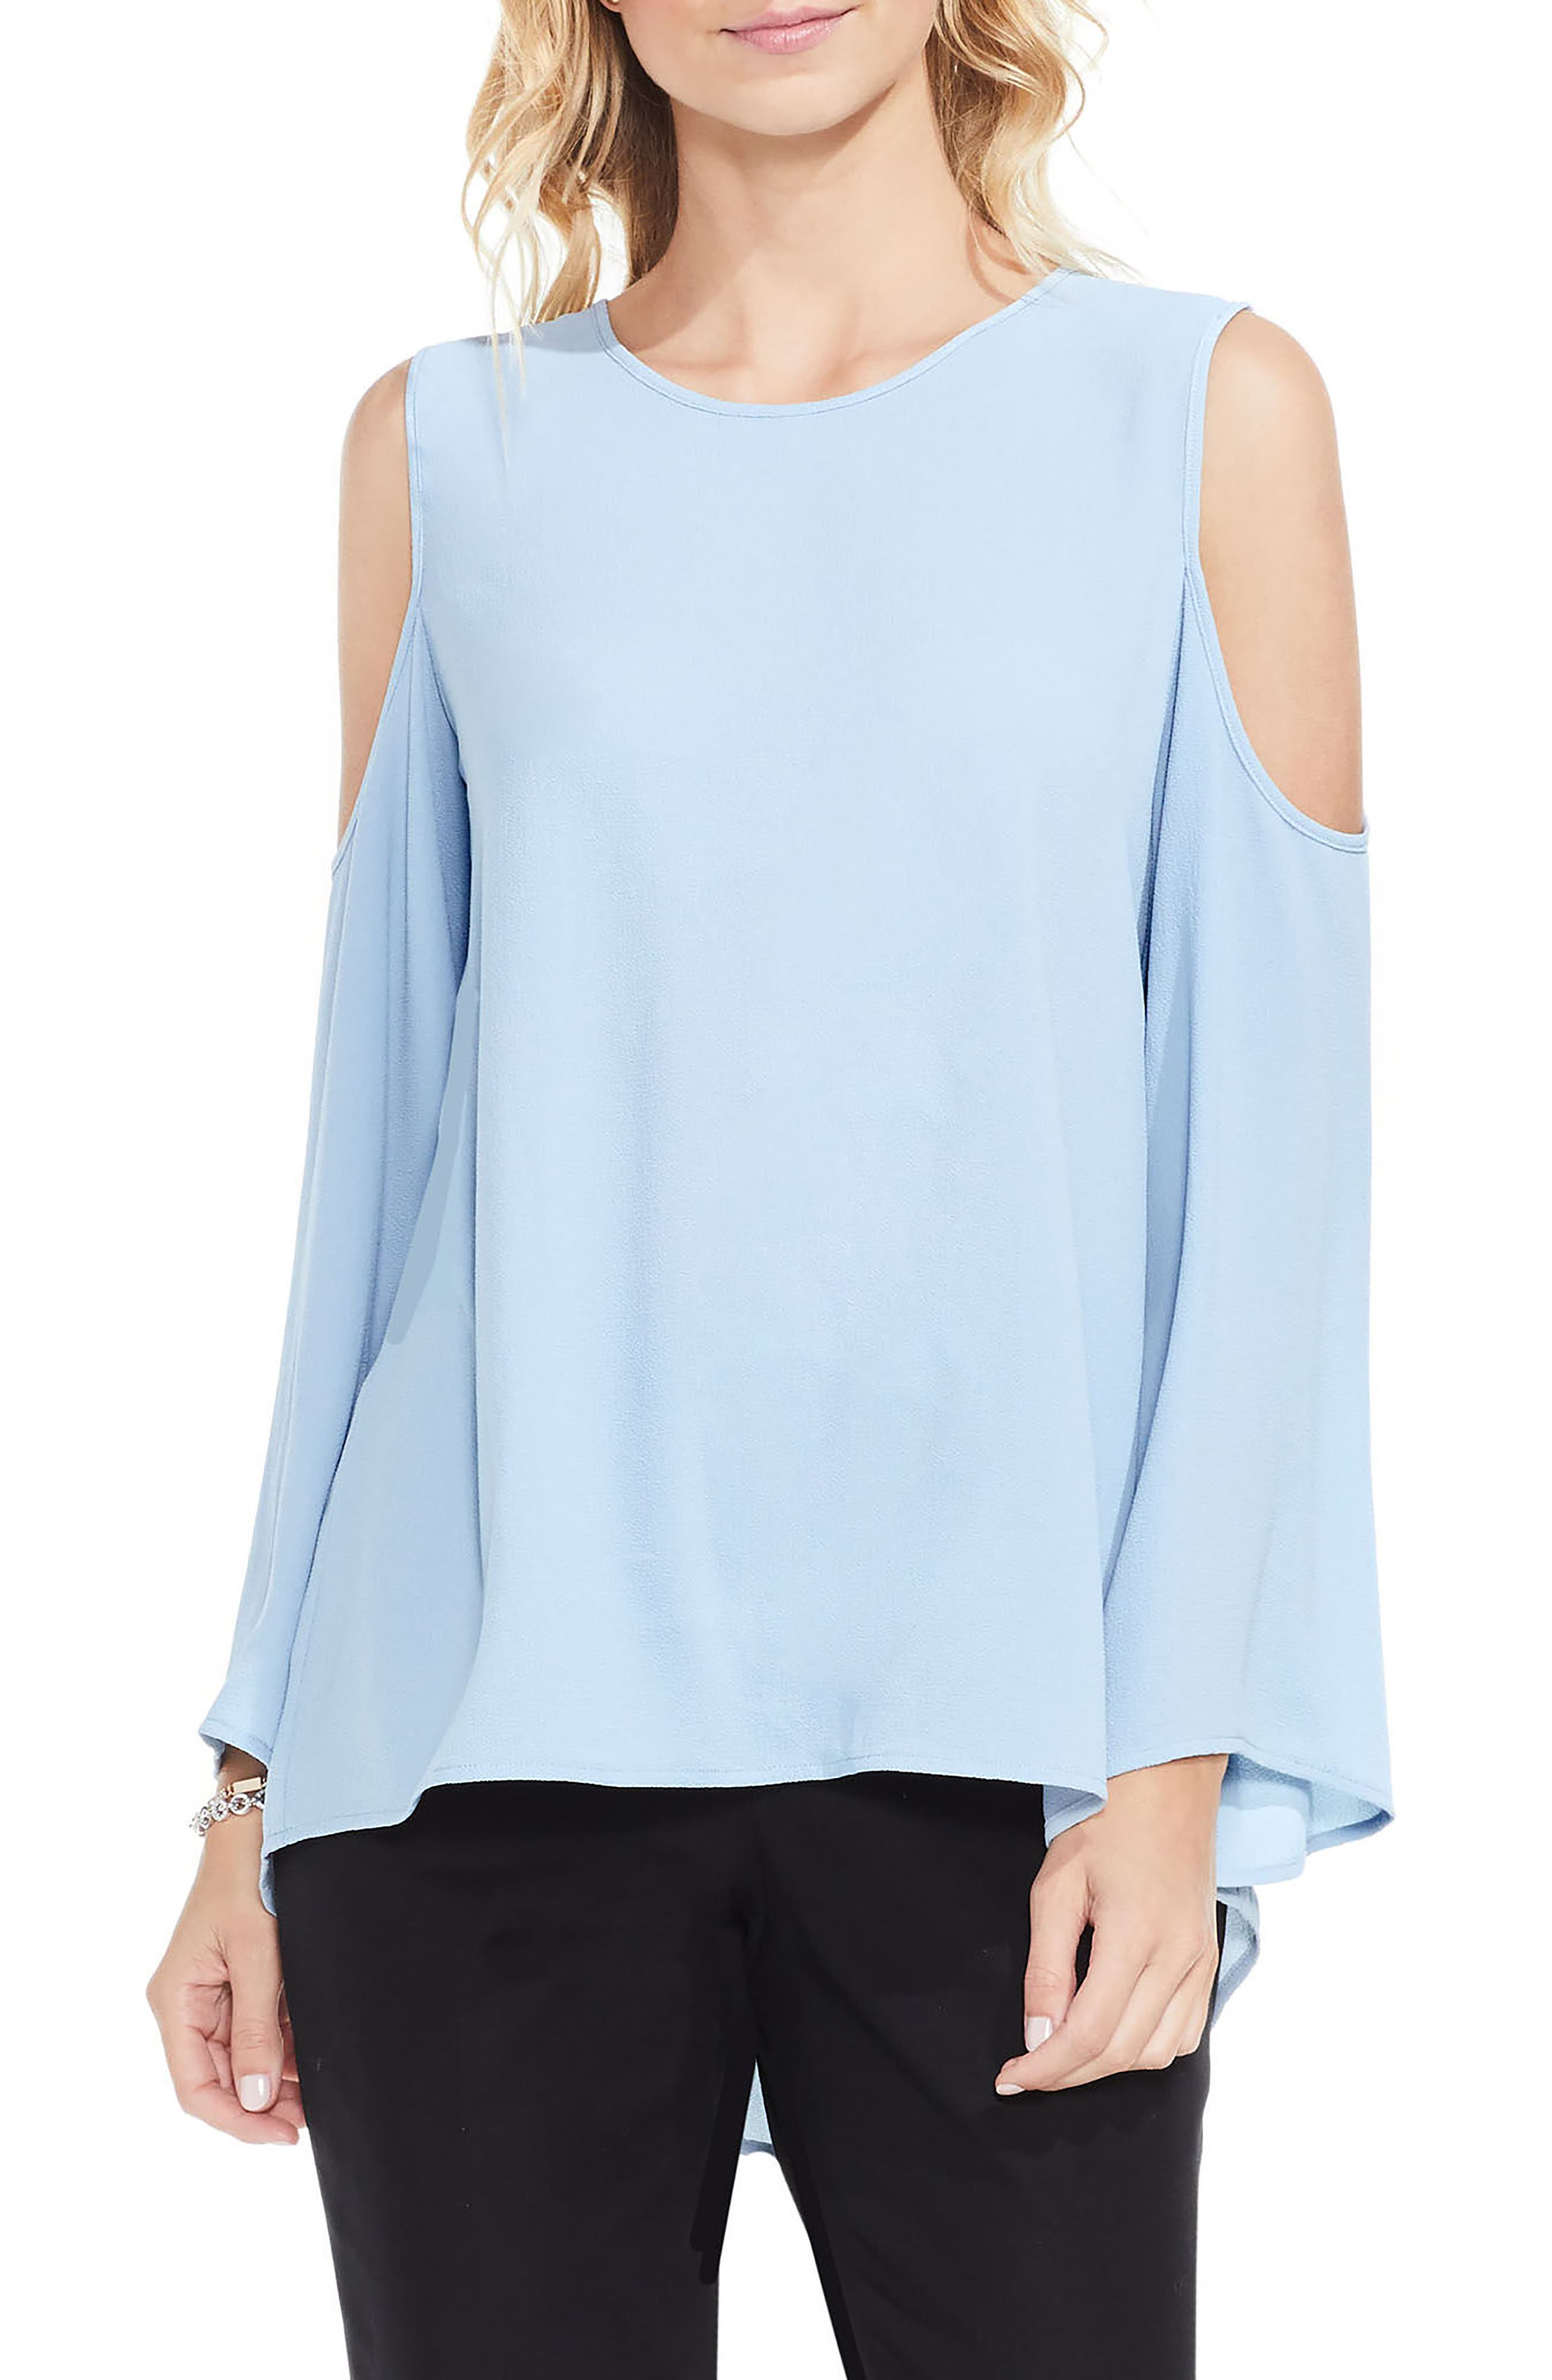 Bell Sleeve Cold Shoulder Blouse,                             Main thumbnail 1, color,                             474